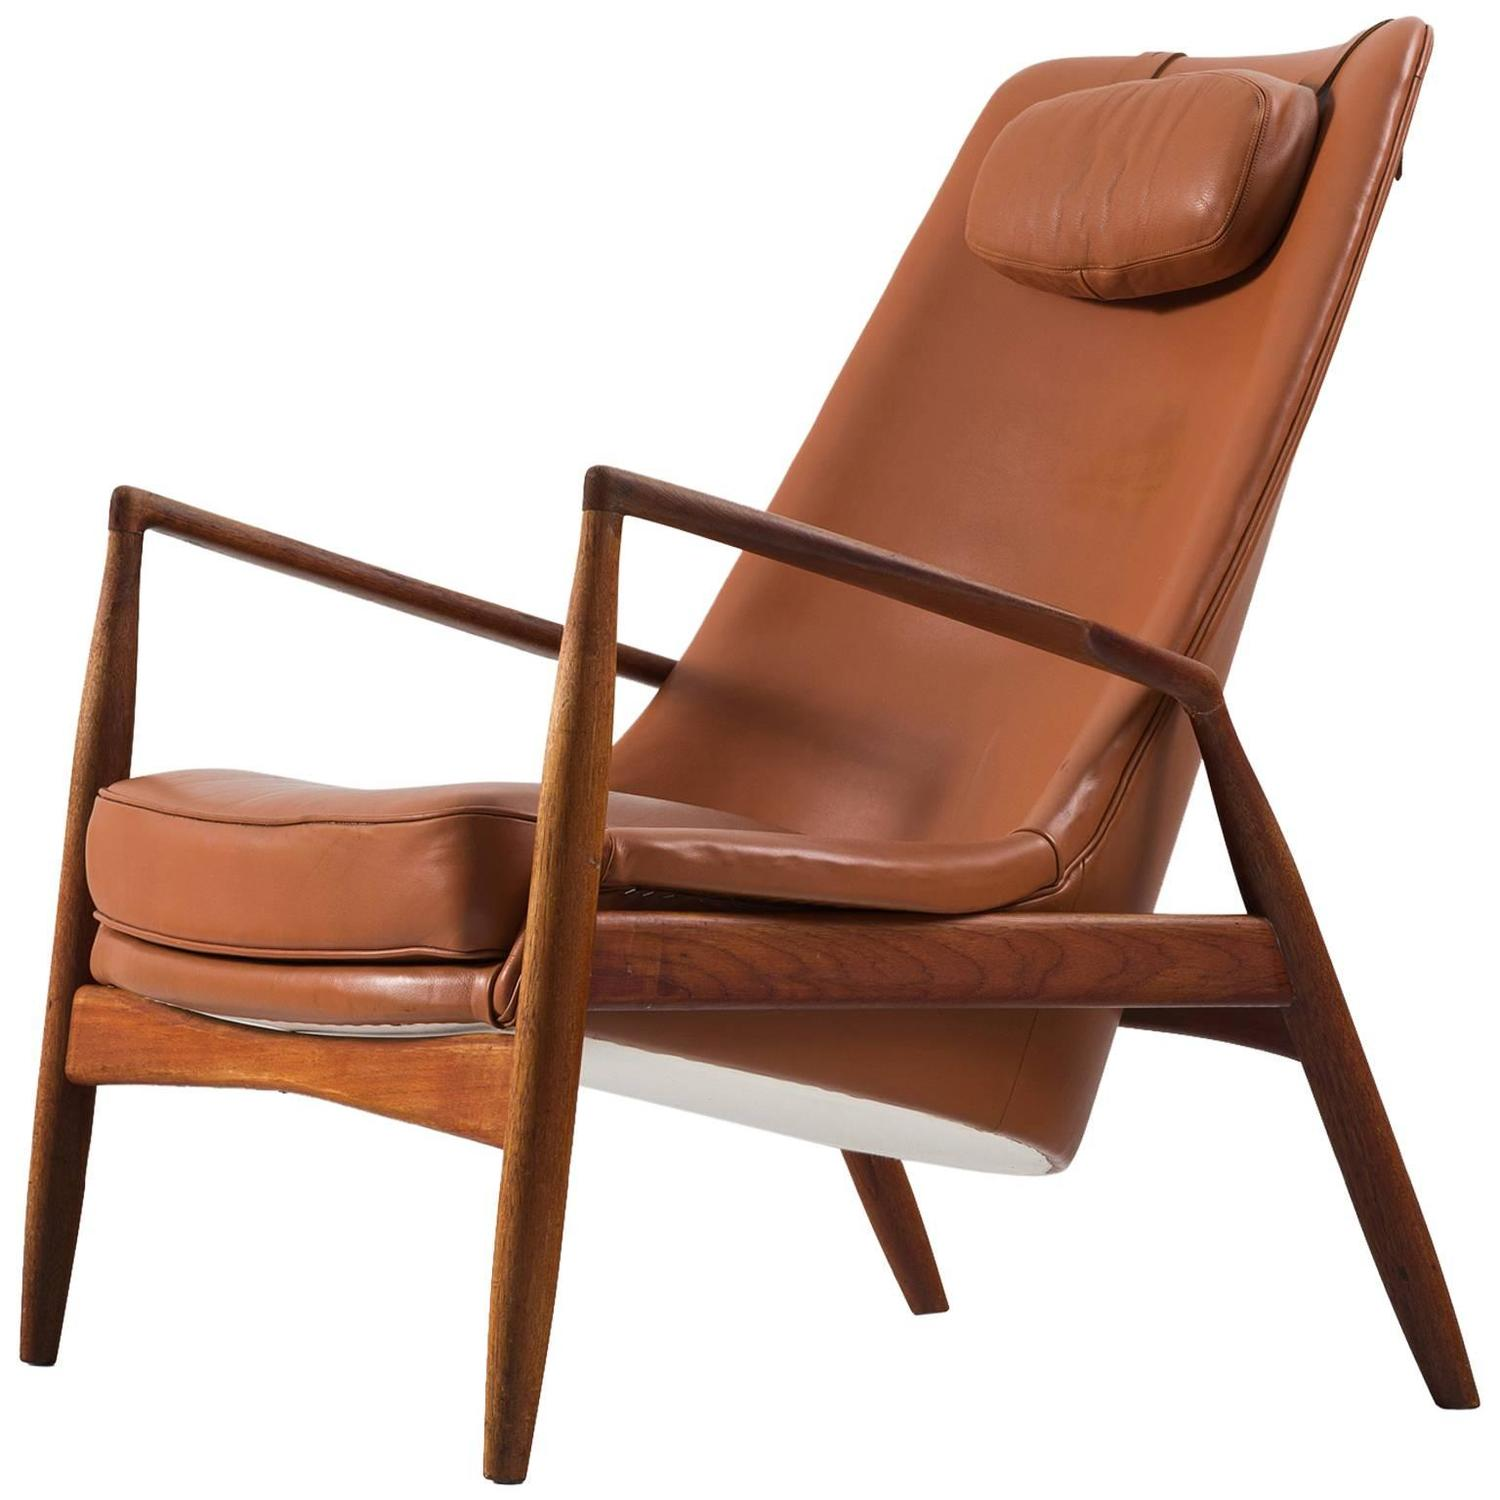 Ib Kofod Larsen 39 Seal 39 High Back Lounge Chair In Cognac Leather For S